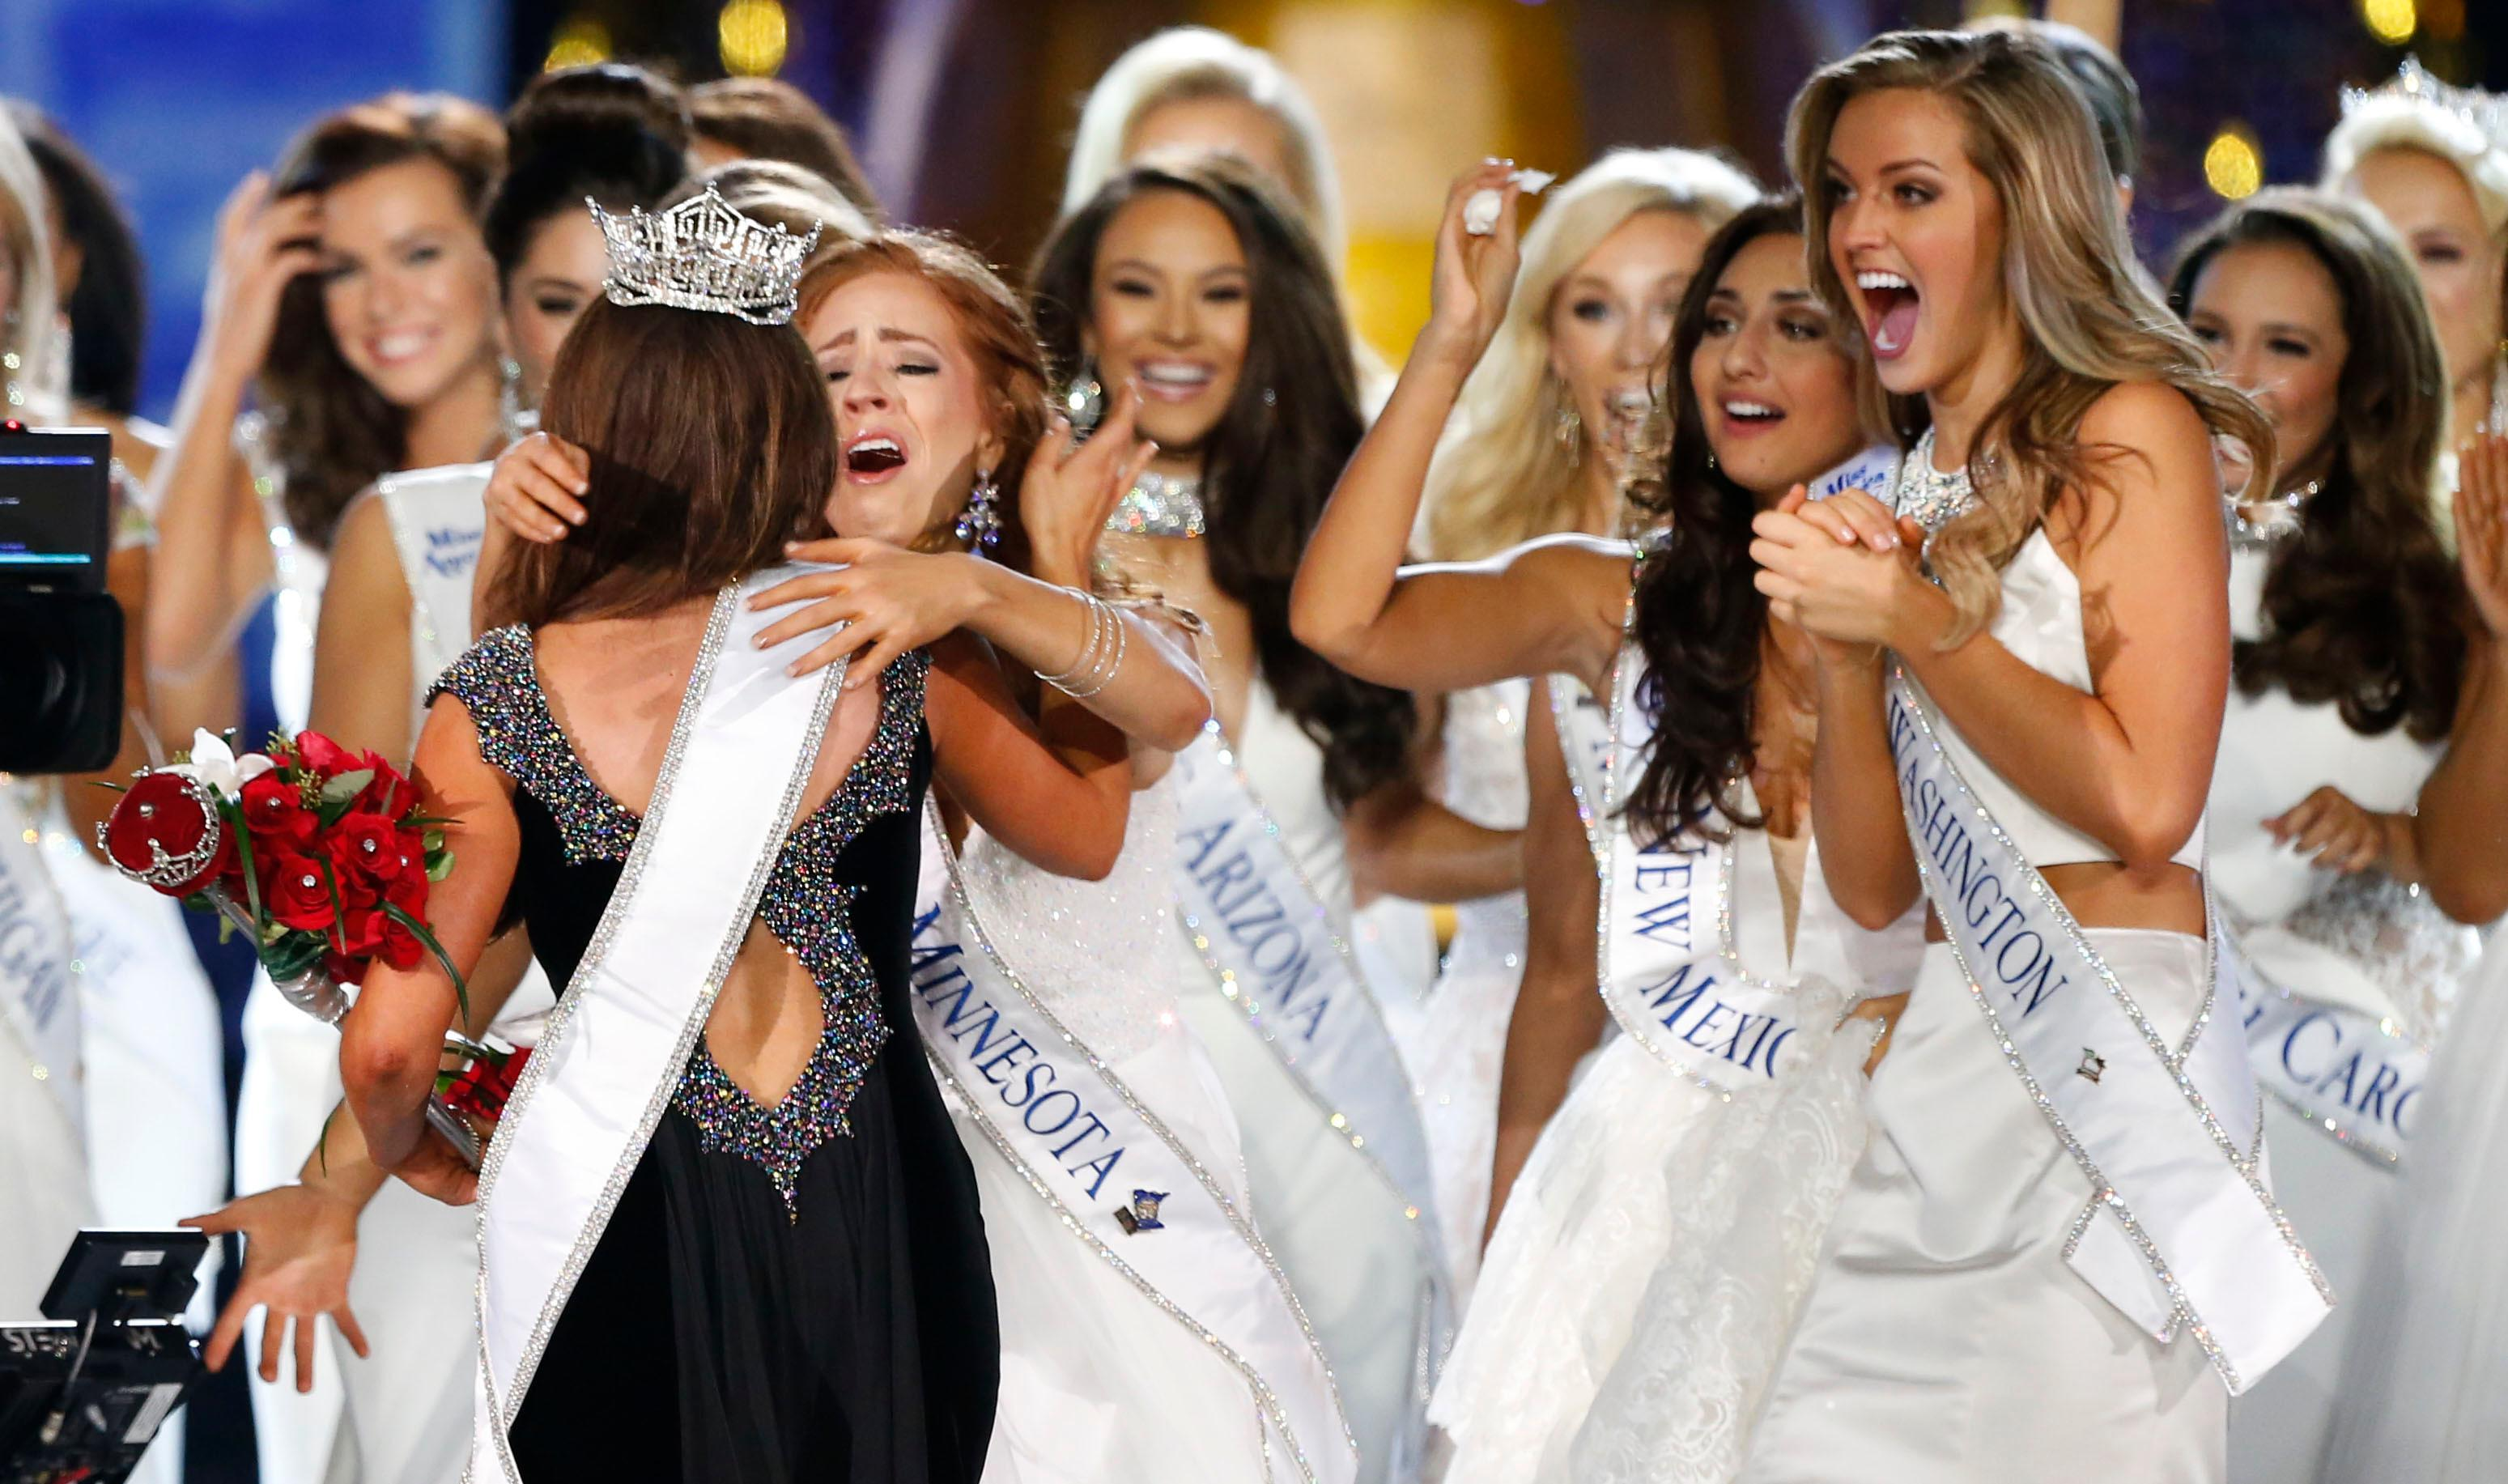 Miss North Dakota Cara Mund is congratulated by contestants after being named Miss America during Miss America 2018 pageant, Sunday, Sept. 10, 2017, in Atlantic City, N.J. (AP Photo/Noah K. Murray)